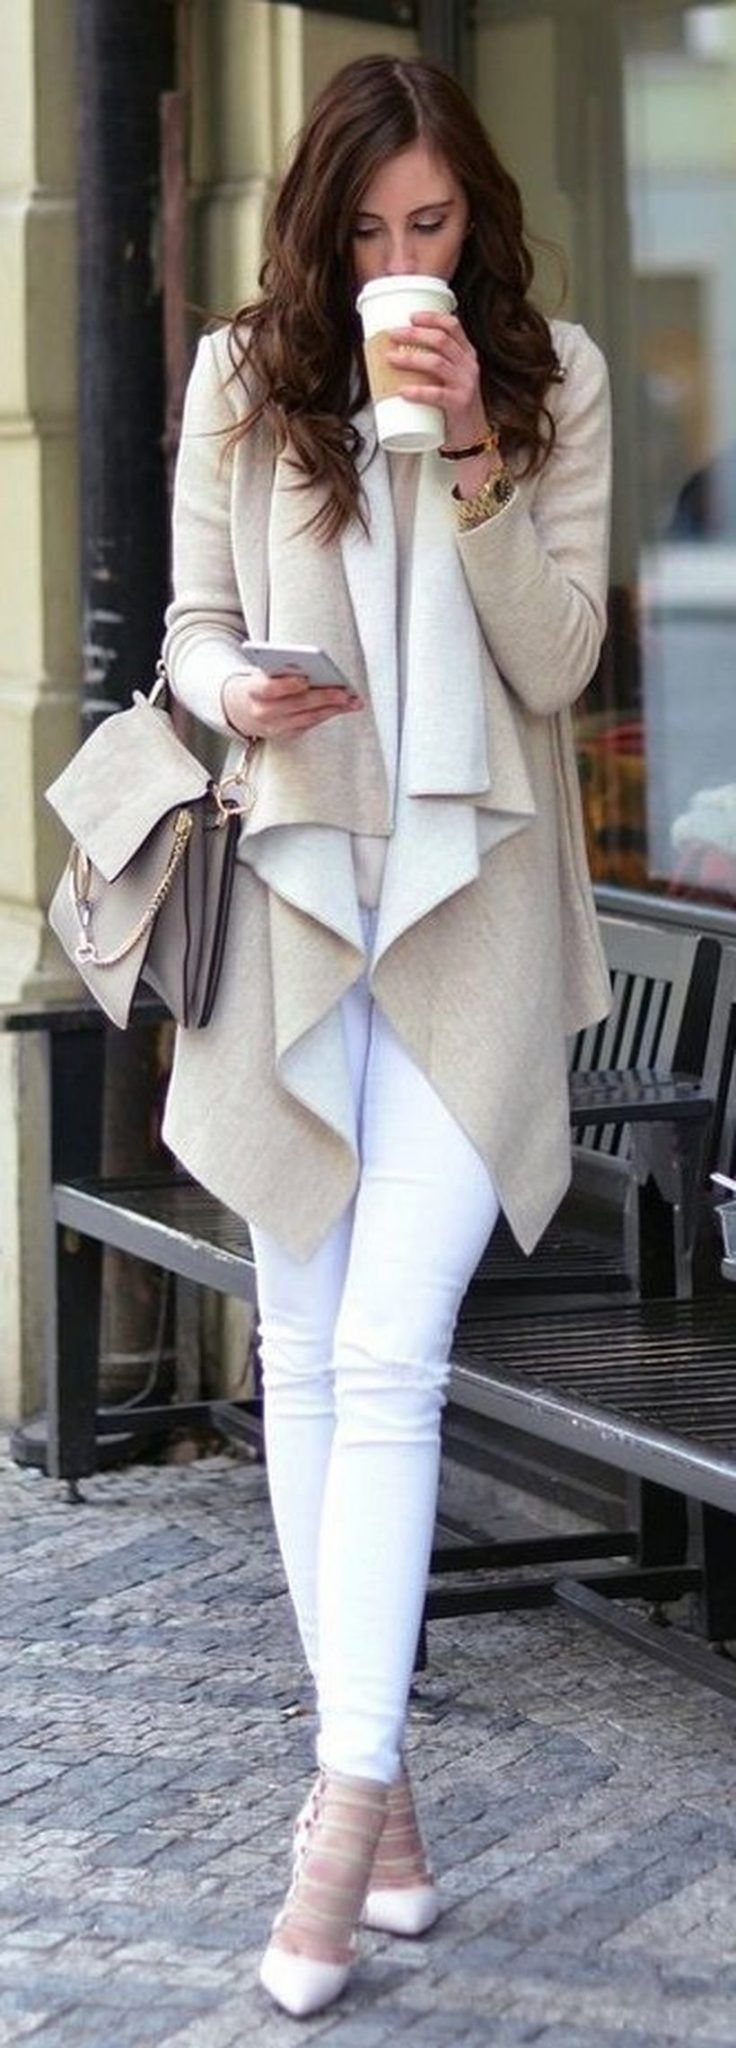 8596 best Winter Fashion images on Pinterest | Clothing, Sweater ...